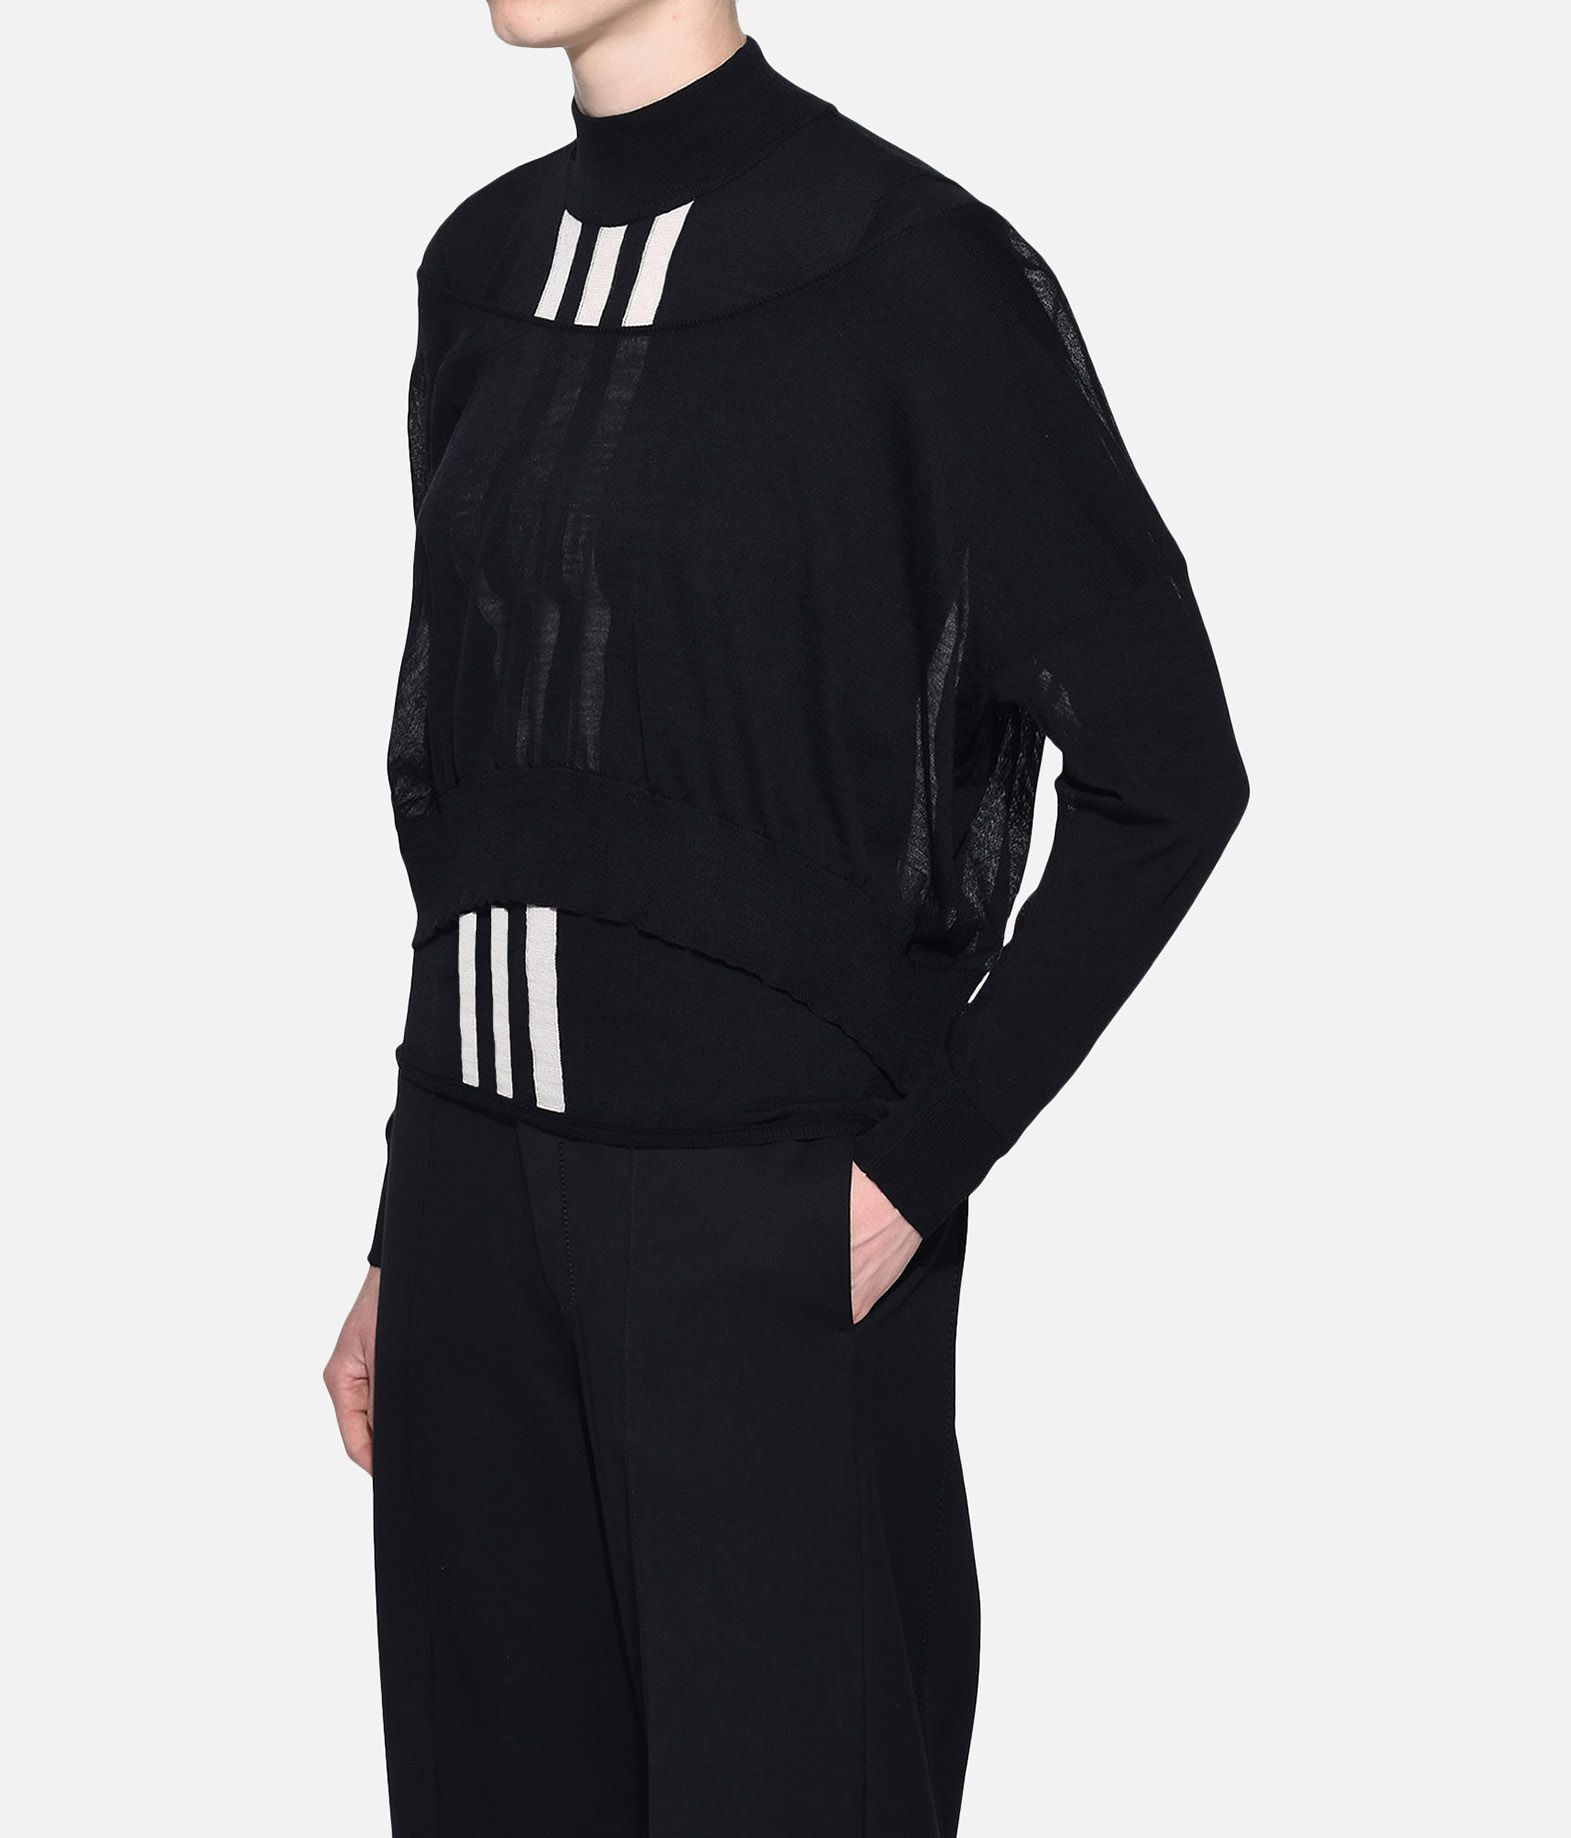 Y-3 Y-3 Layered Knitted Cropped Sweater Long sleeve sweater Woman e